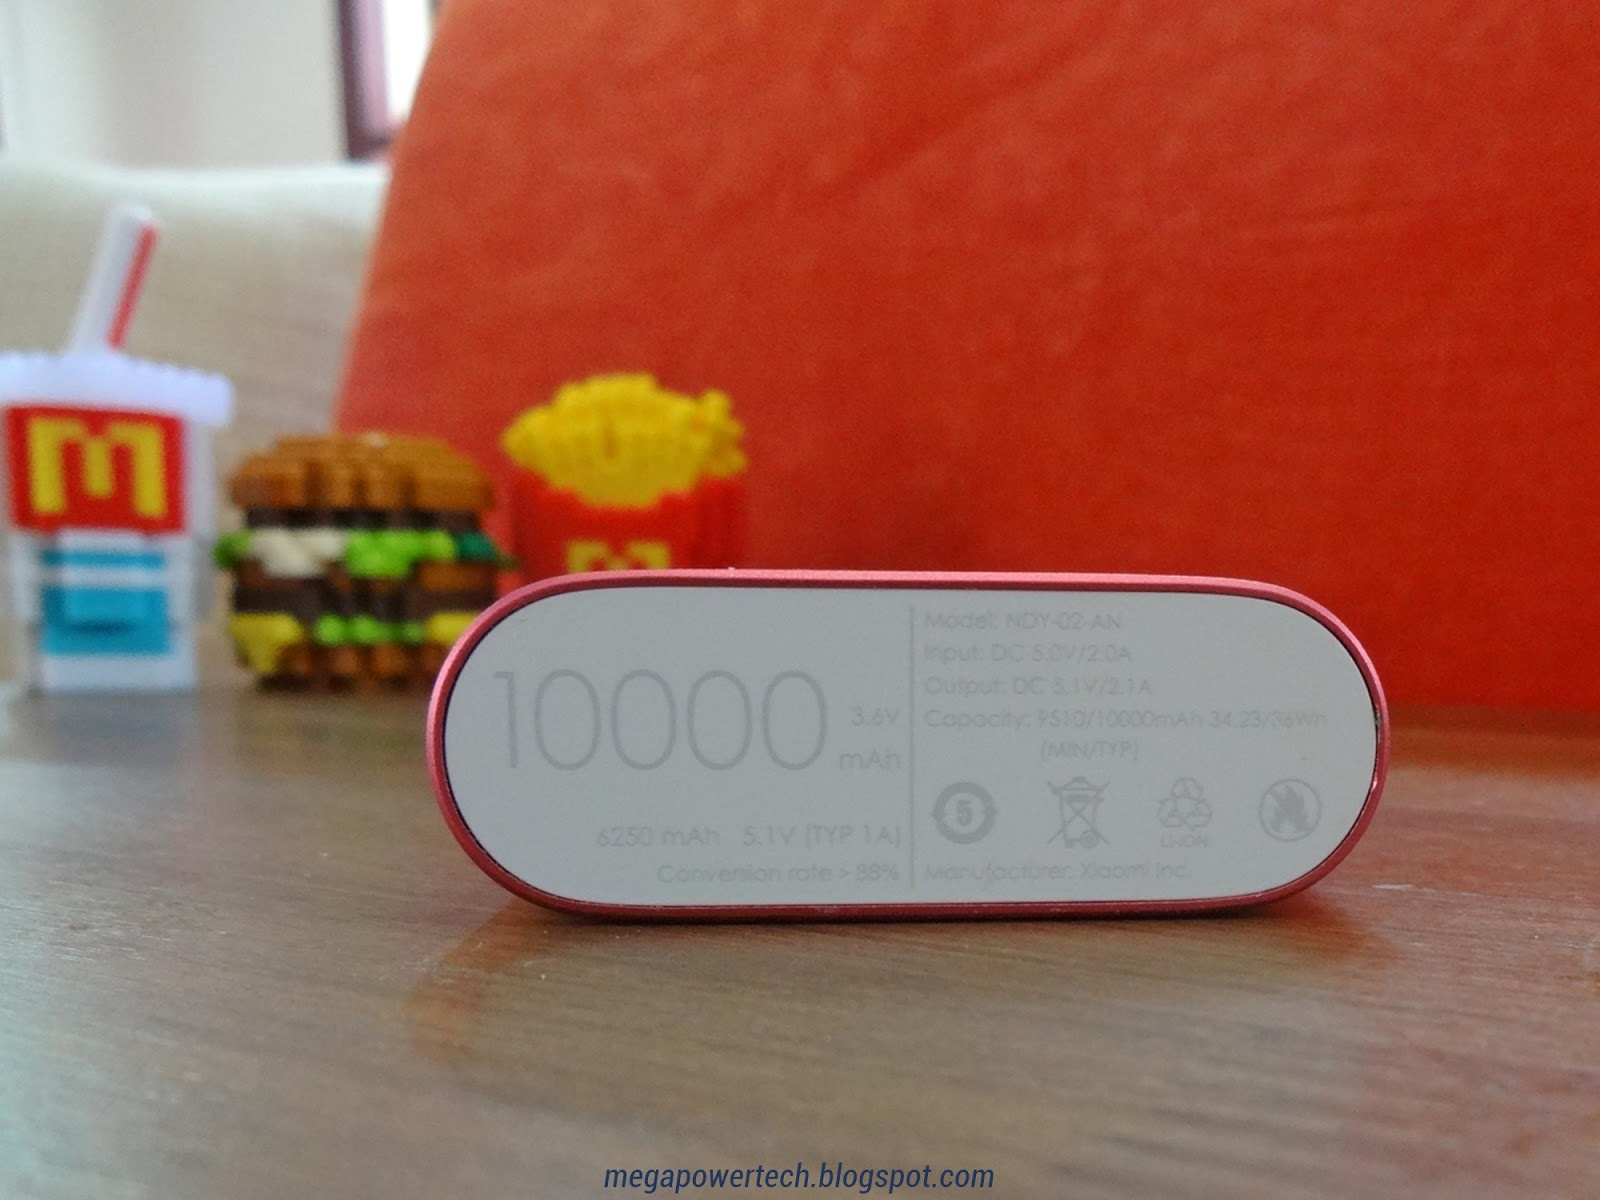 xiaomi-10000-mi-power-bank-red